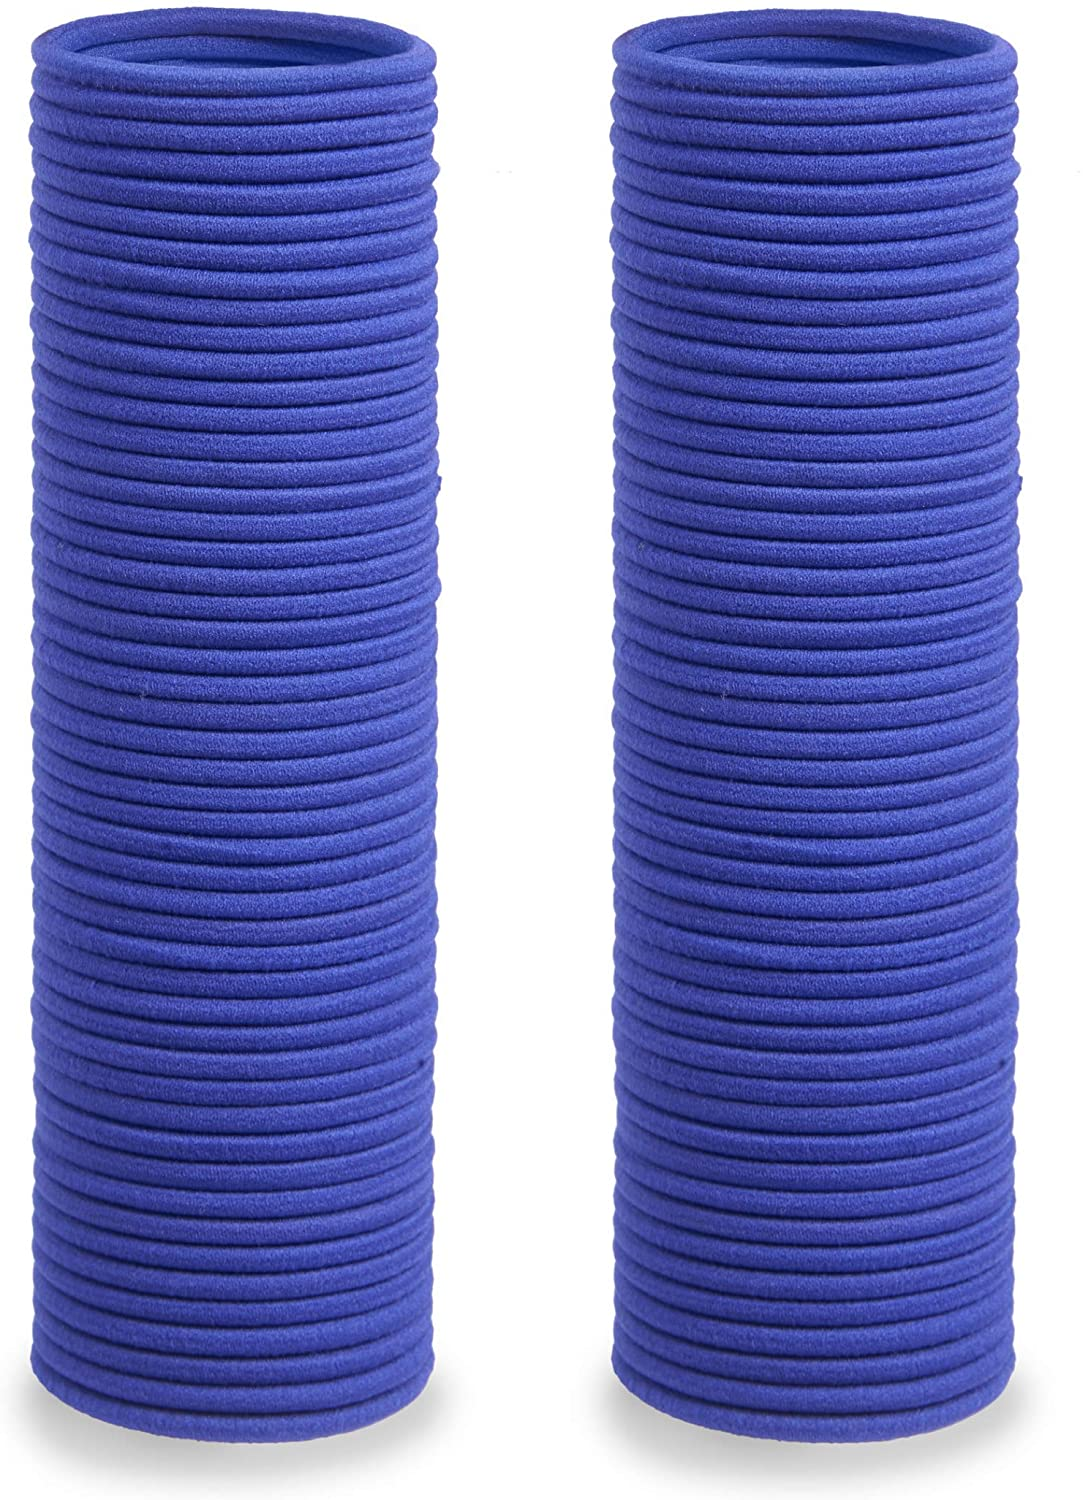 Soul Projekt Hair Bands 100 Pack 4mm/Excellent Multipurpose Ties (Blue), No Metal Tough Elastic Hair Bobbles for Numerous Hair Types/Pigtail, Plaiting, Ponytails & Buns For School, Work or Gym